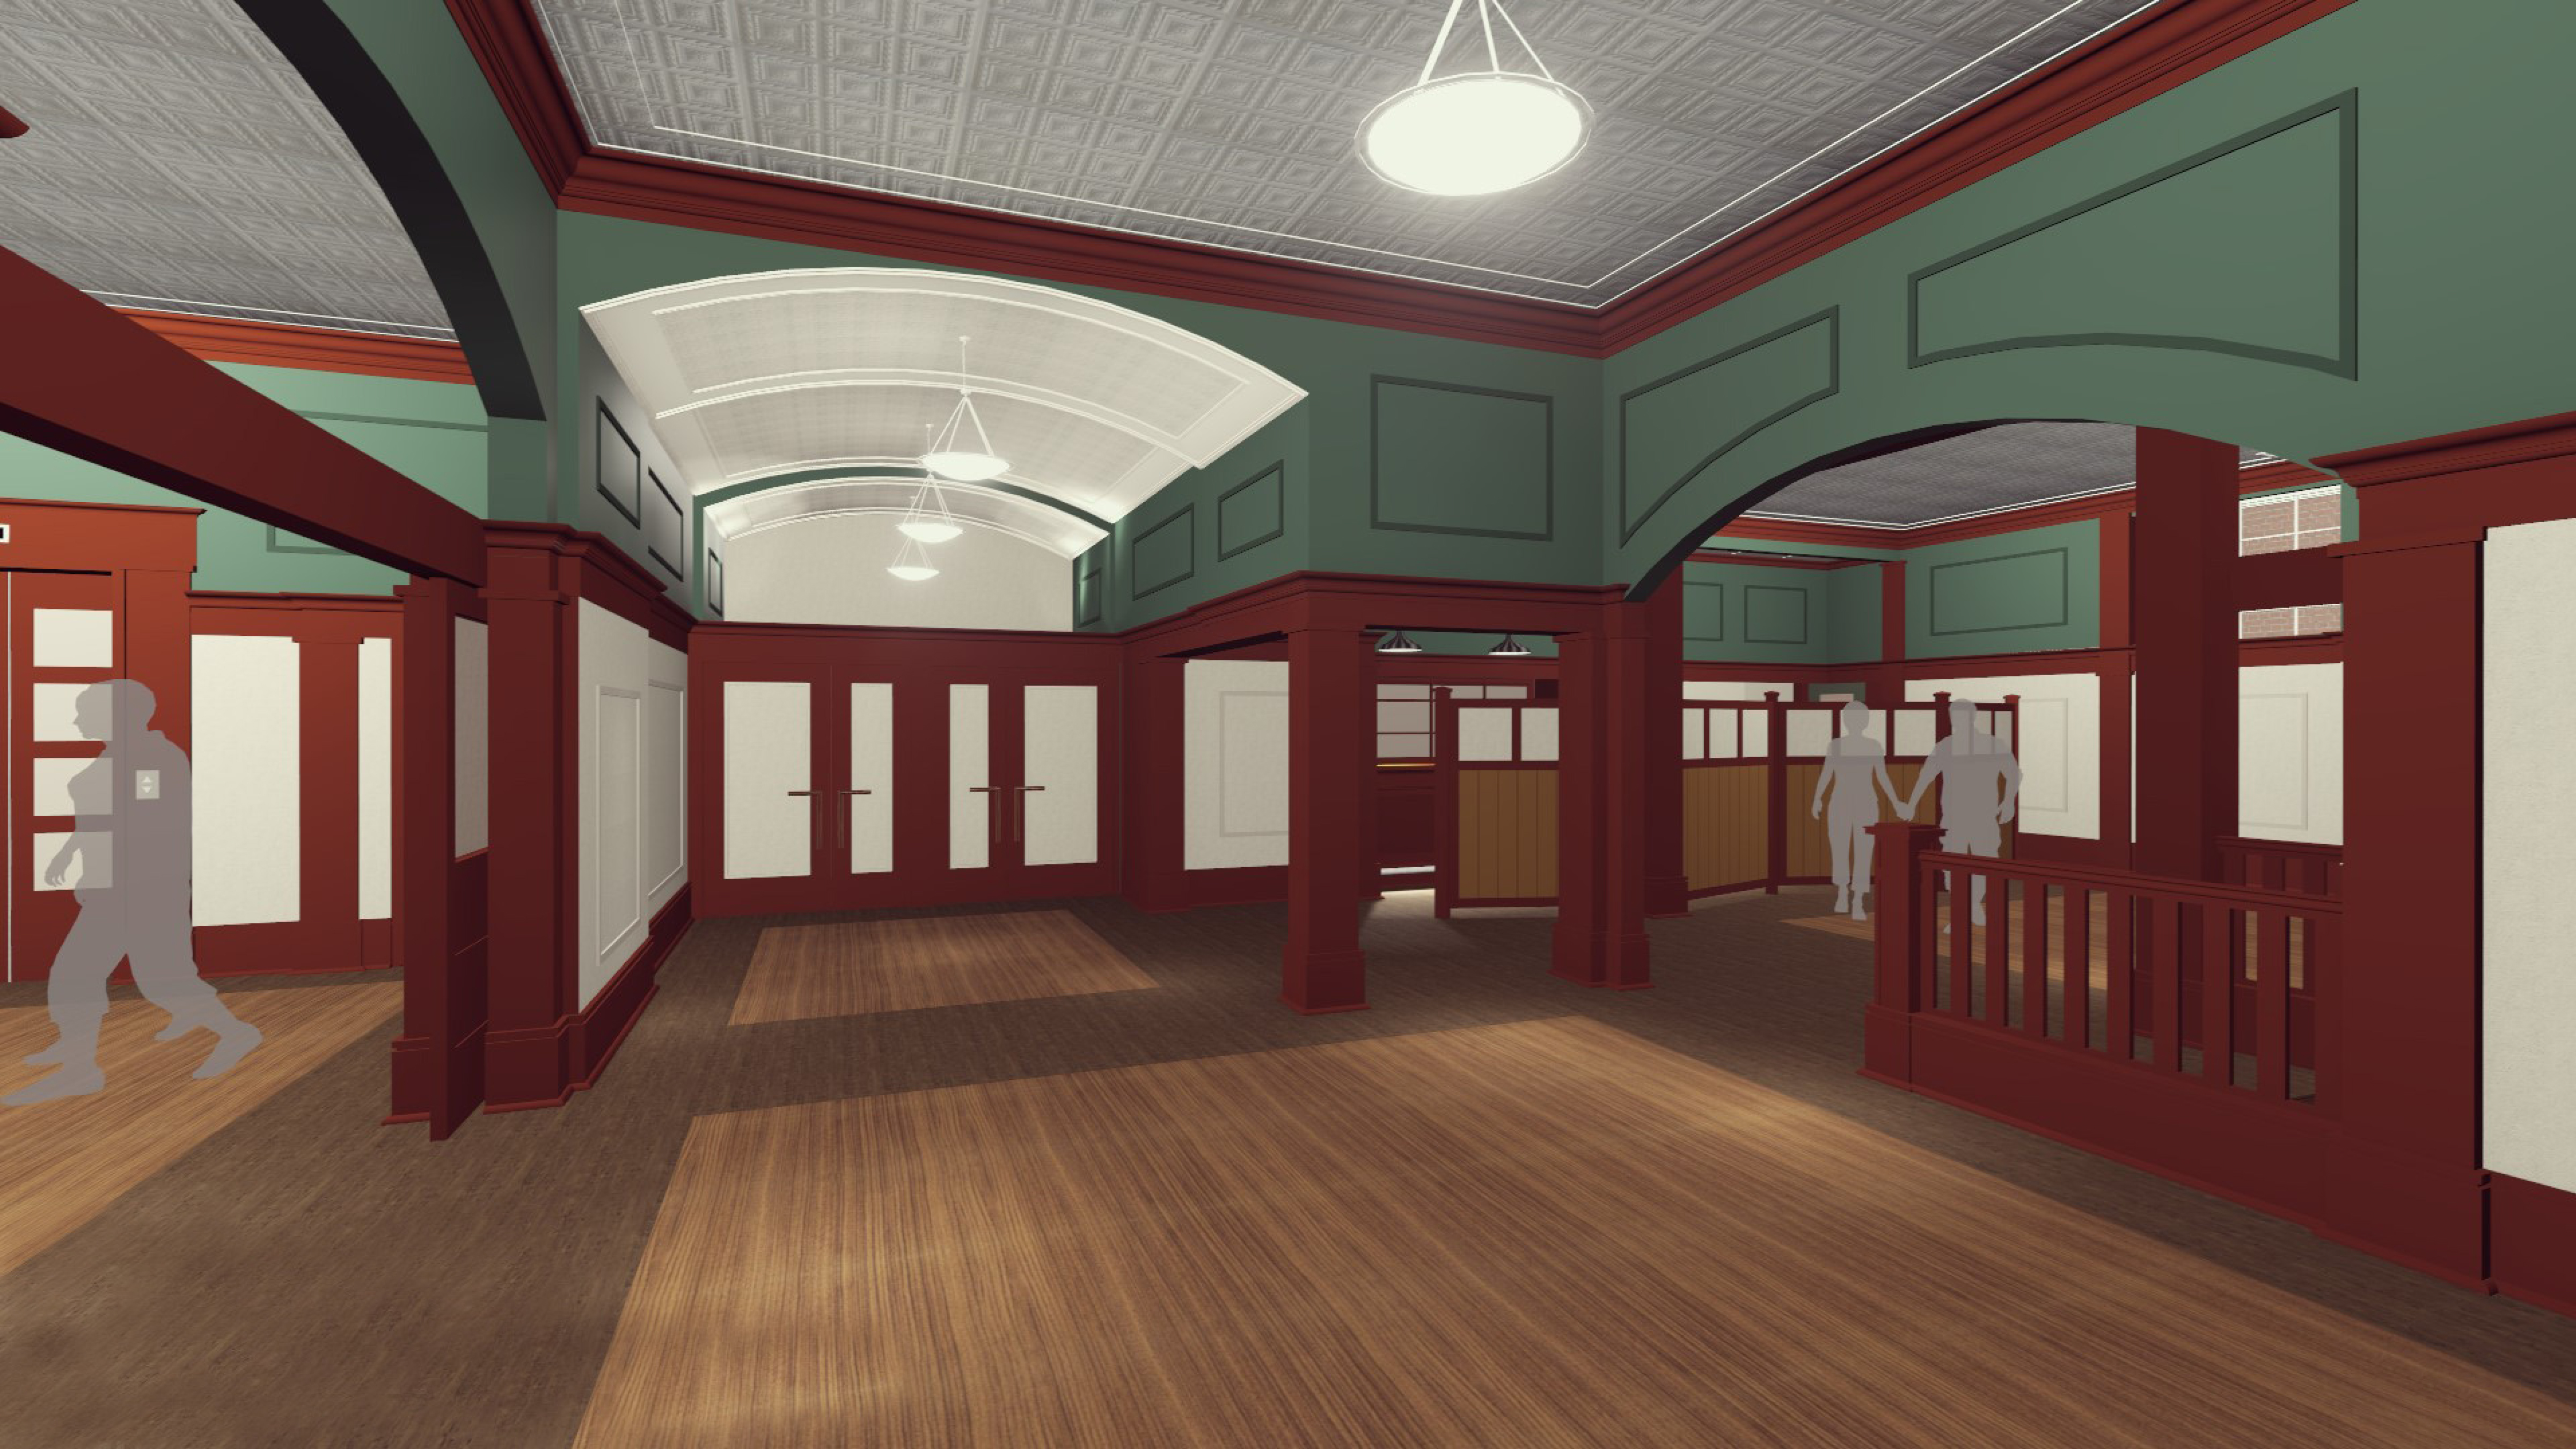 Goshen Theater's multi-million dollar renovation will add luster to city's downtown